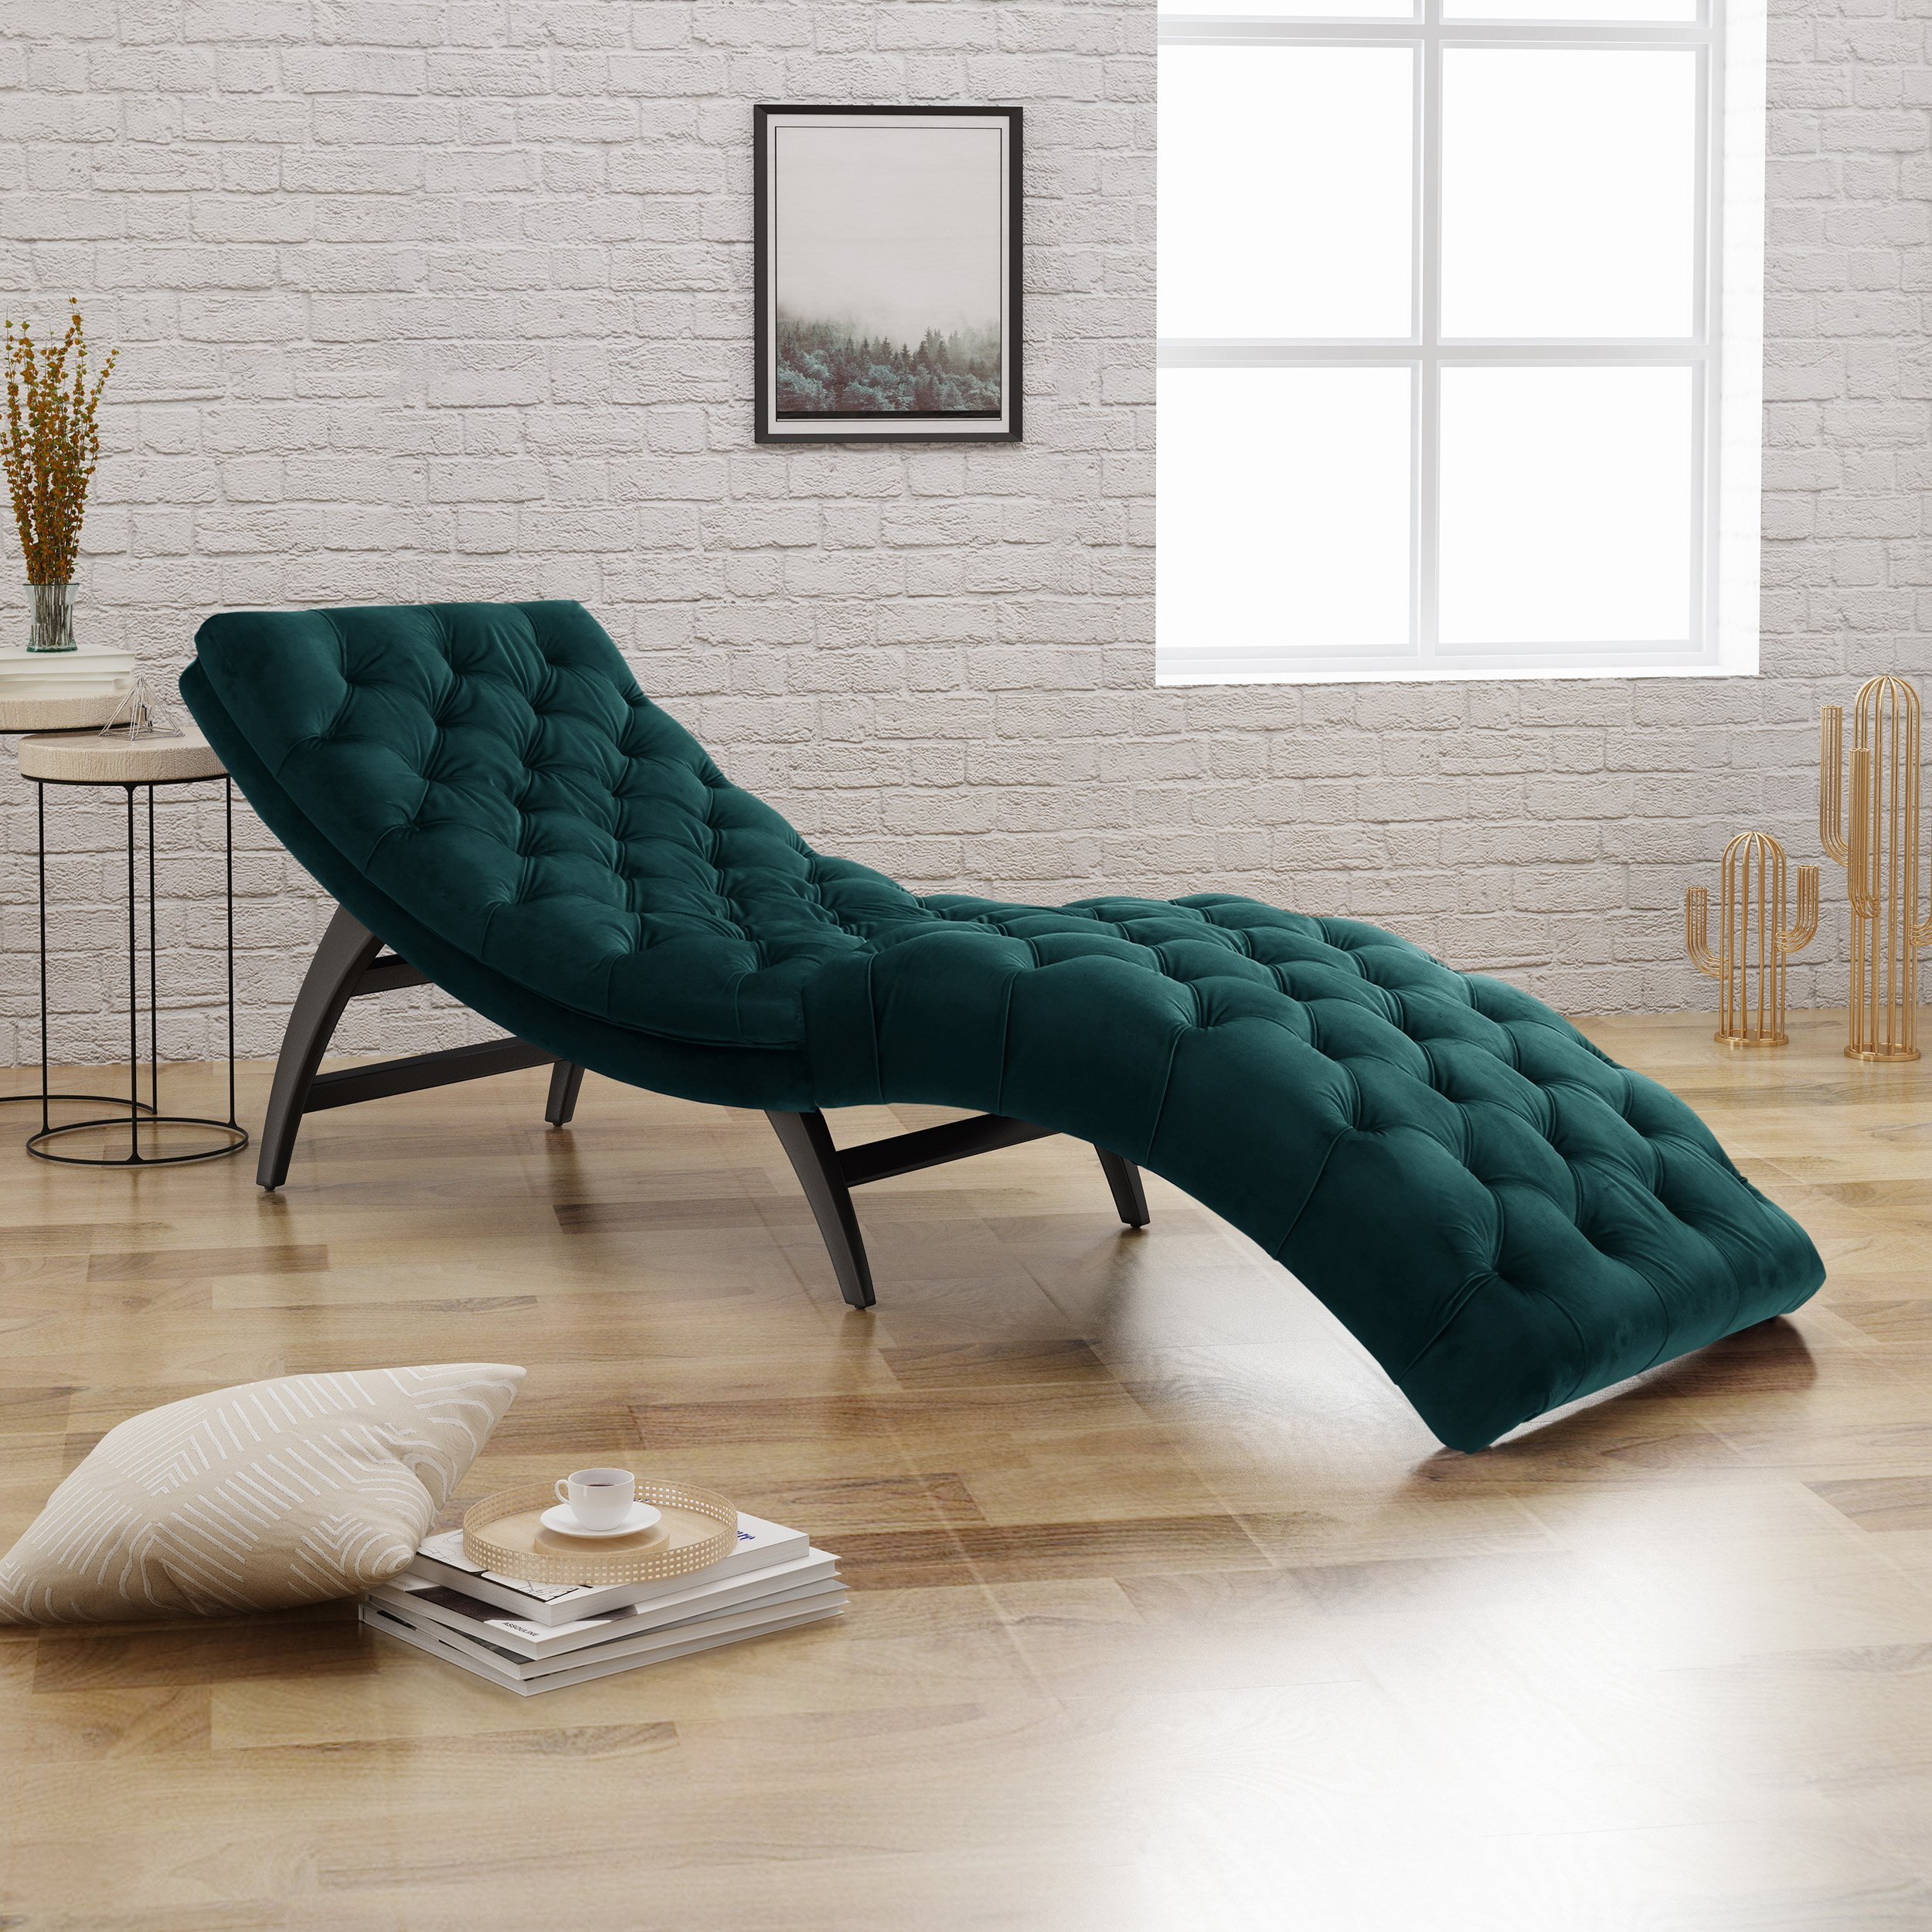 Astounding Details About Modern Chaise Lounge Chair Sofa Daybed Curved Lounger Bedroom Teal Velvet Tufted Machost Co Dining Chair Design Ideas Machostcouk